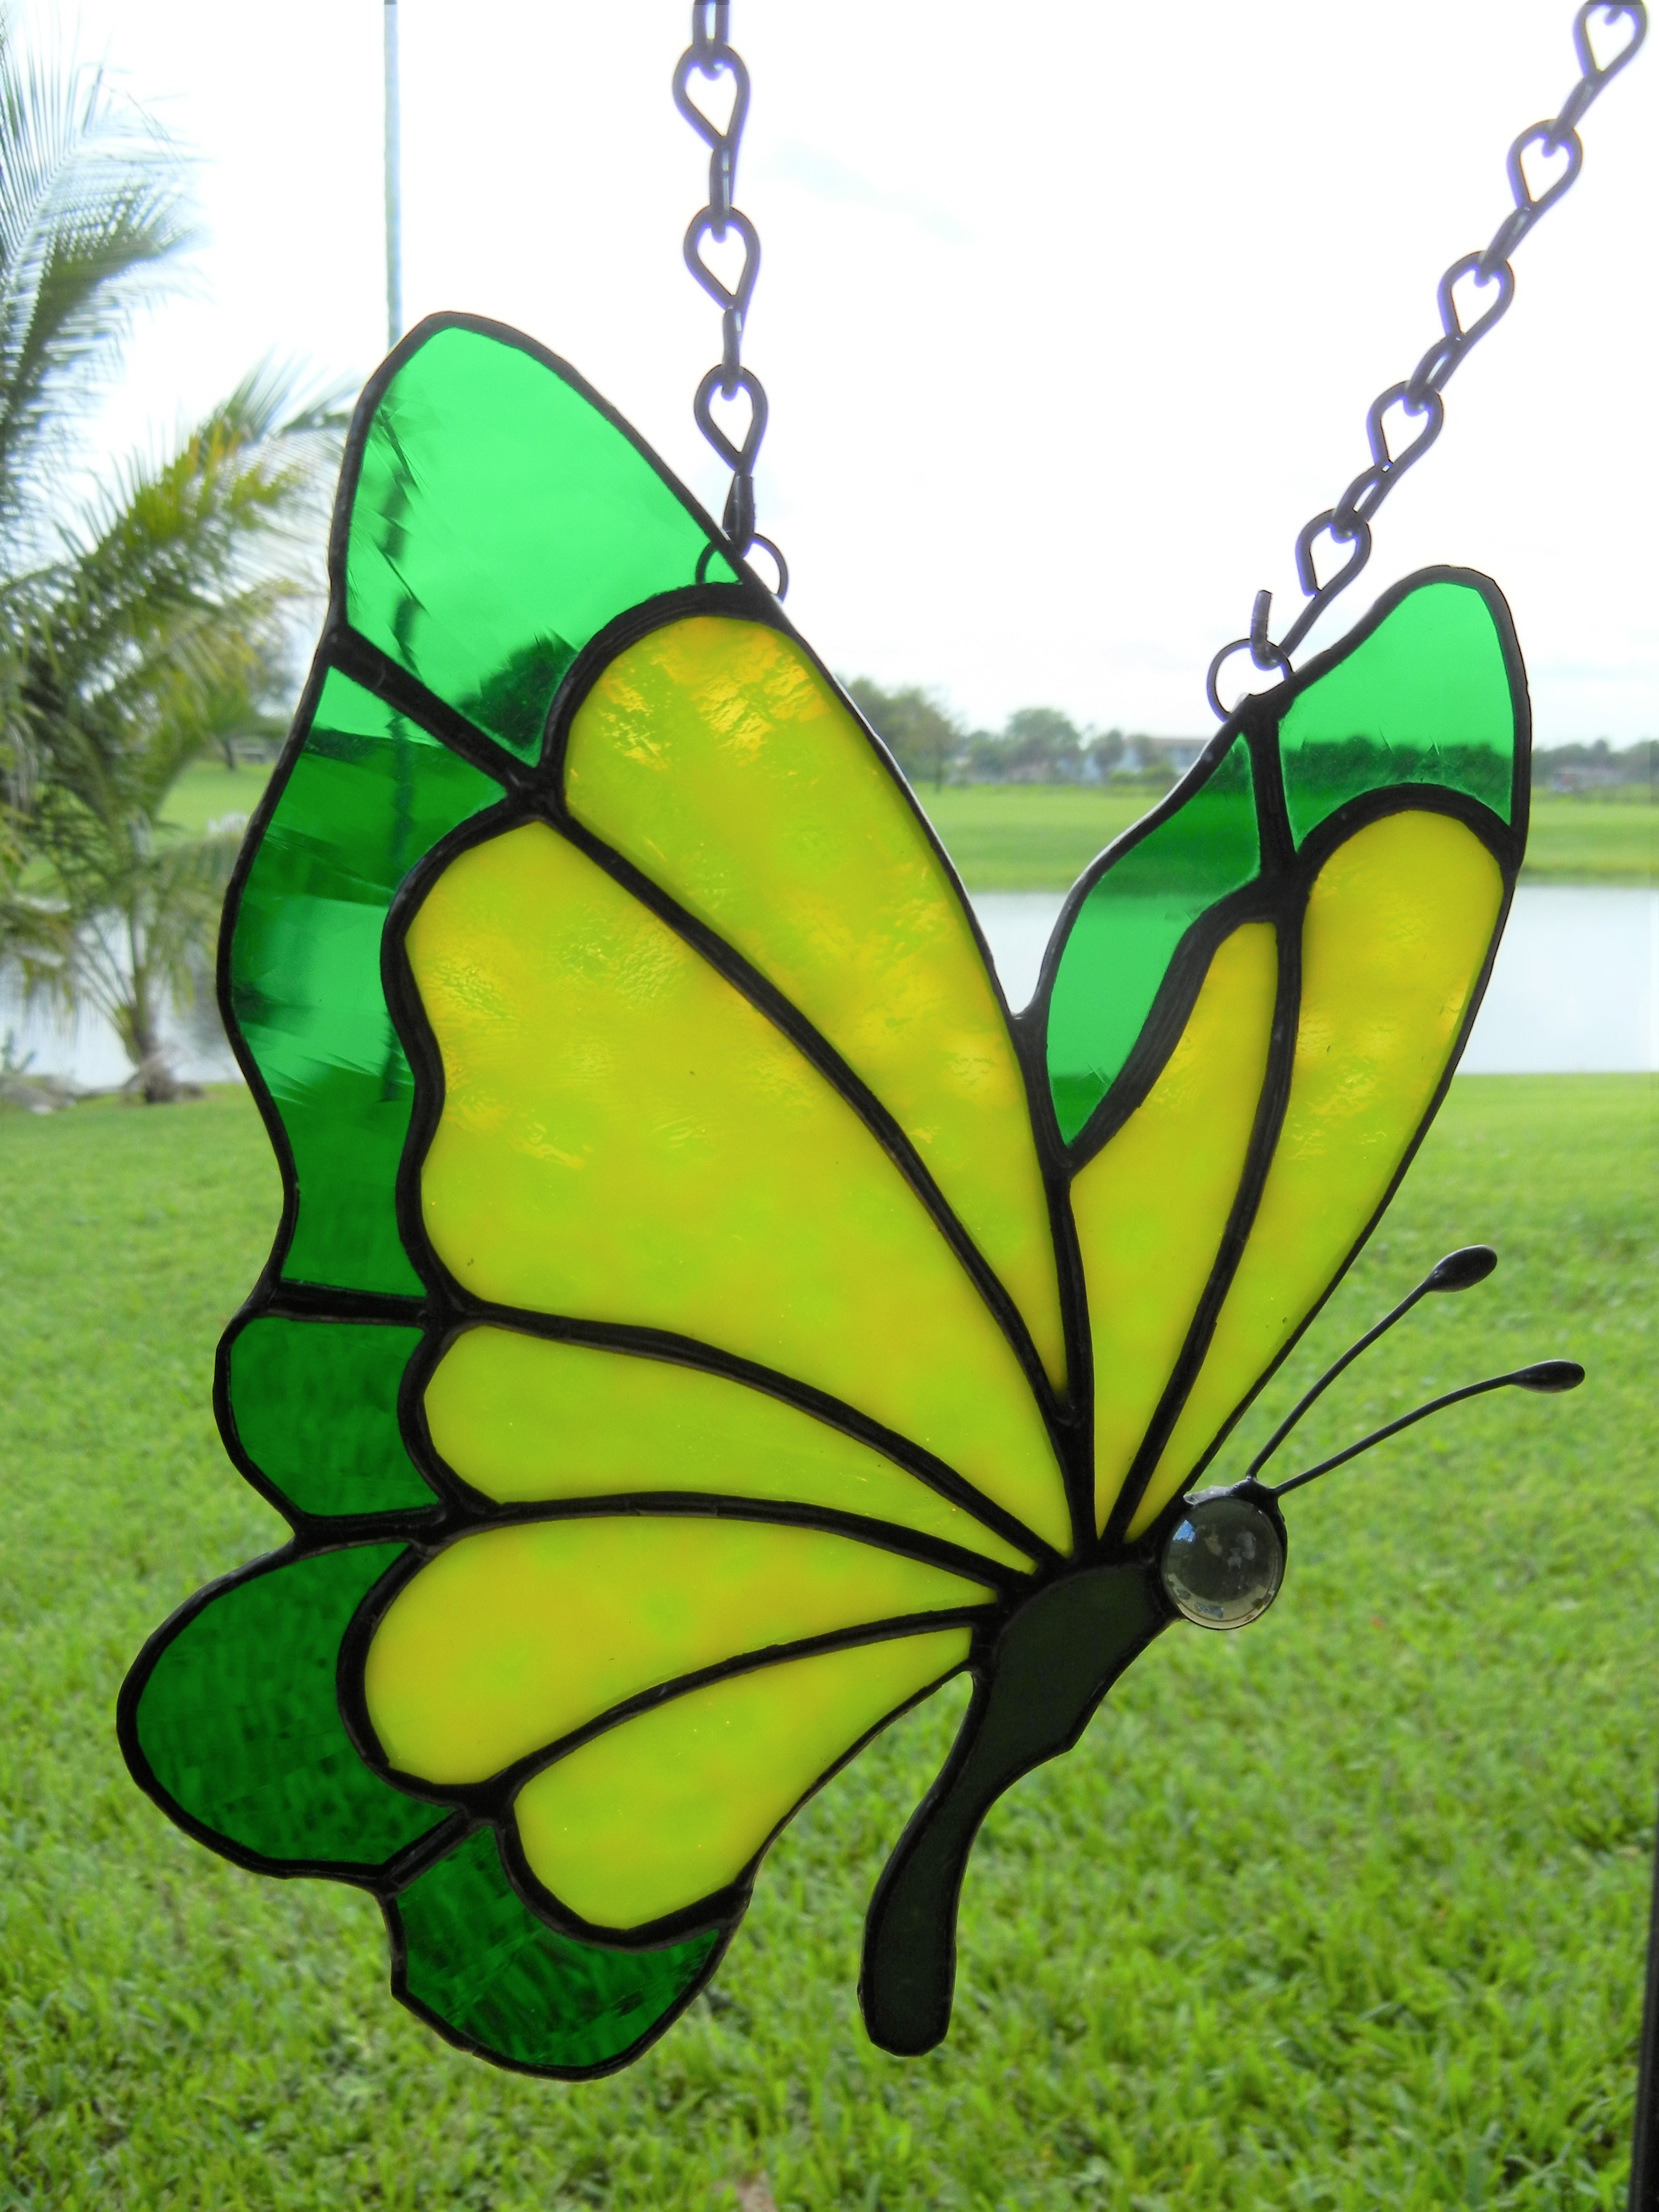 YellowGreen Butterfly 1